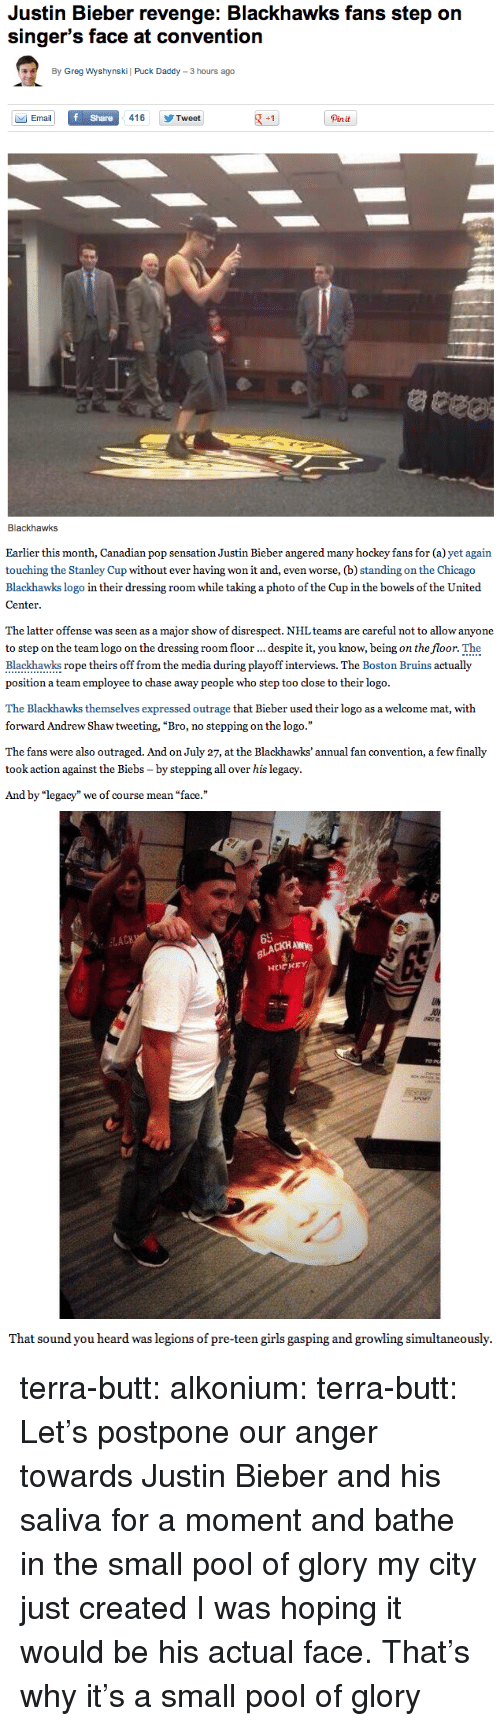 """Biebs: Justin Bieber revenge: Blackhawks fans step orn  singer's face at convention  By Greg Wyshynski 